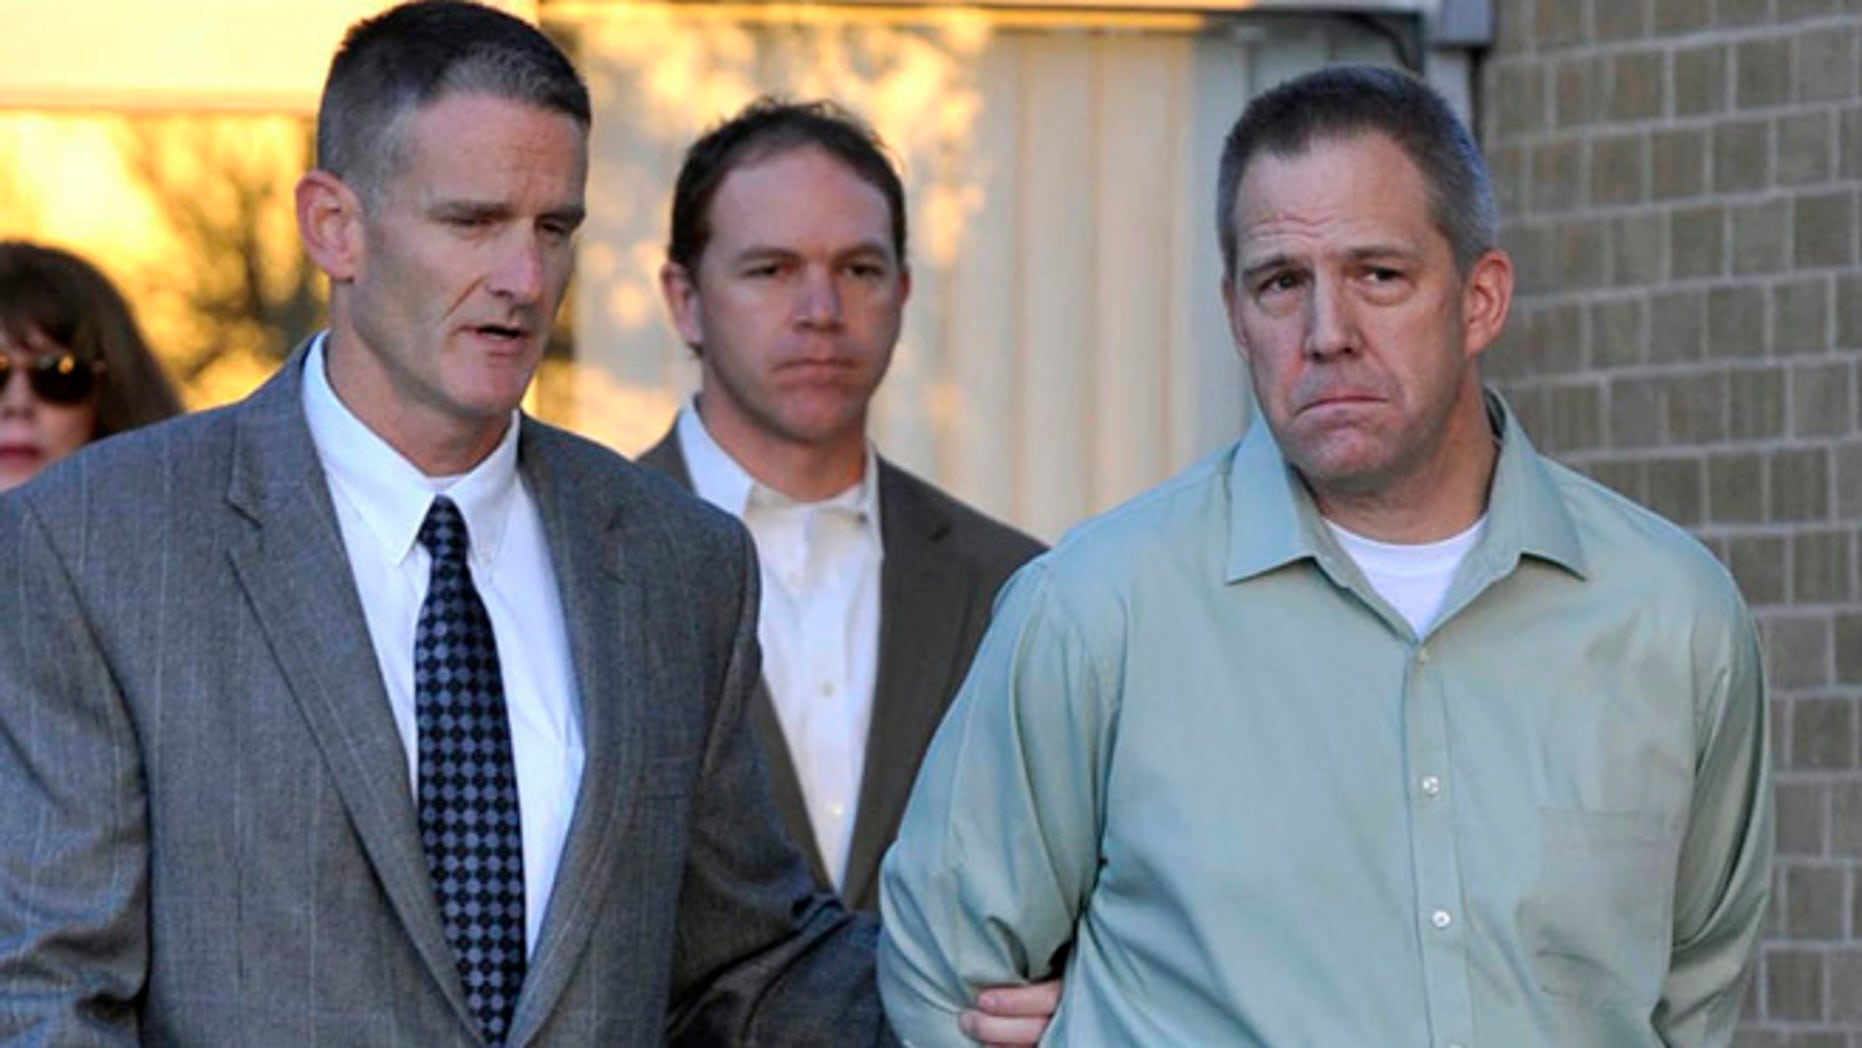 April 2, 2012: In this file photo, JetBlue pilot Clayton Frederick Osbon, right, is escorted to a waiting vehicle by FBI agents in Amarillo, Texas.